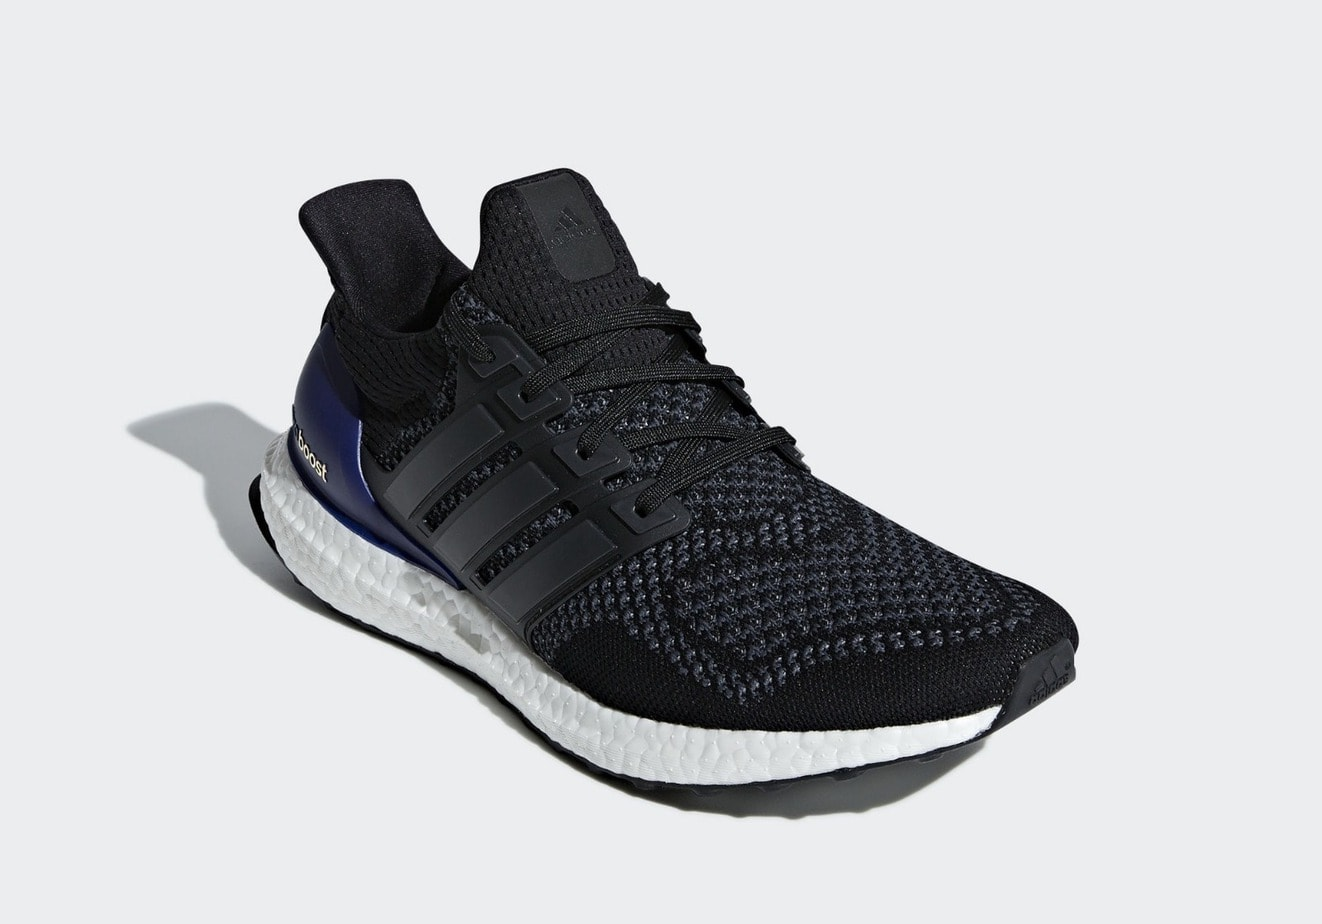 8f14a4c0baca1 adidas Ultra Boost 1.0 OG Restock December 2018 - JustFreshKicks